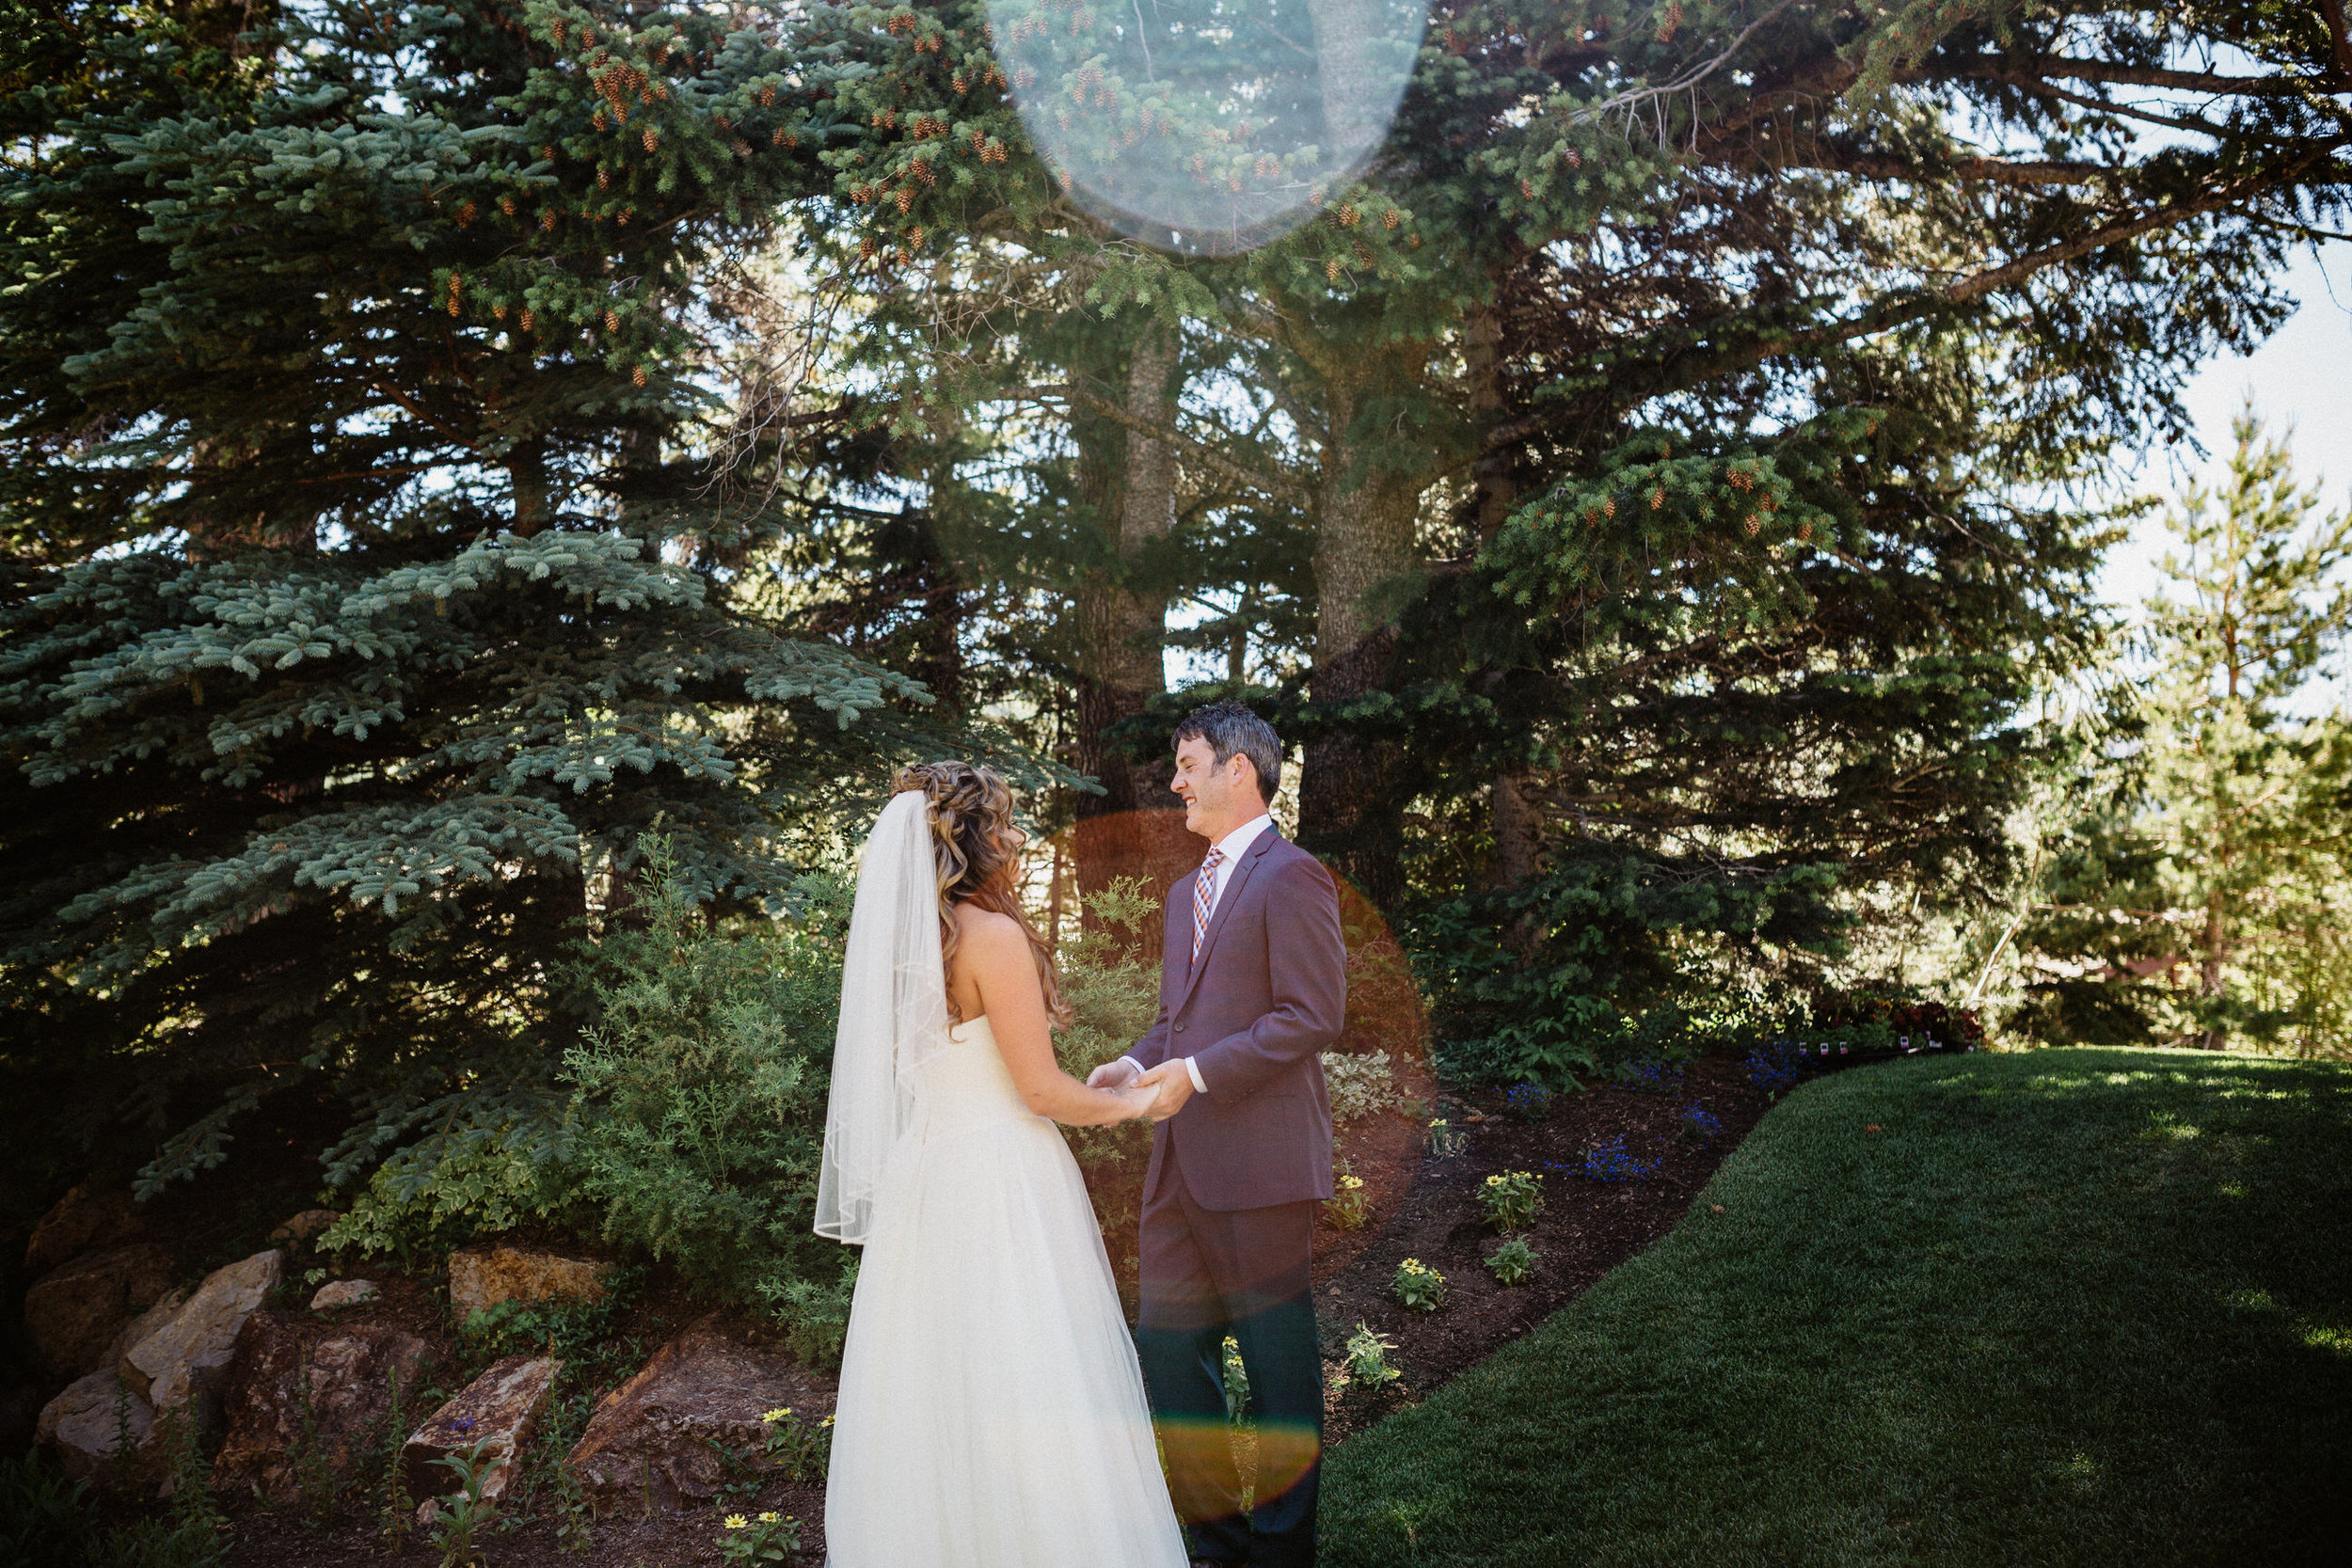 backyard wedding Heber City Utah destination wedding portland oregon photography0036.JPG